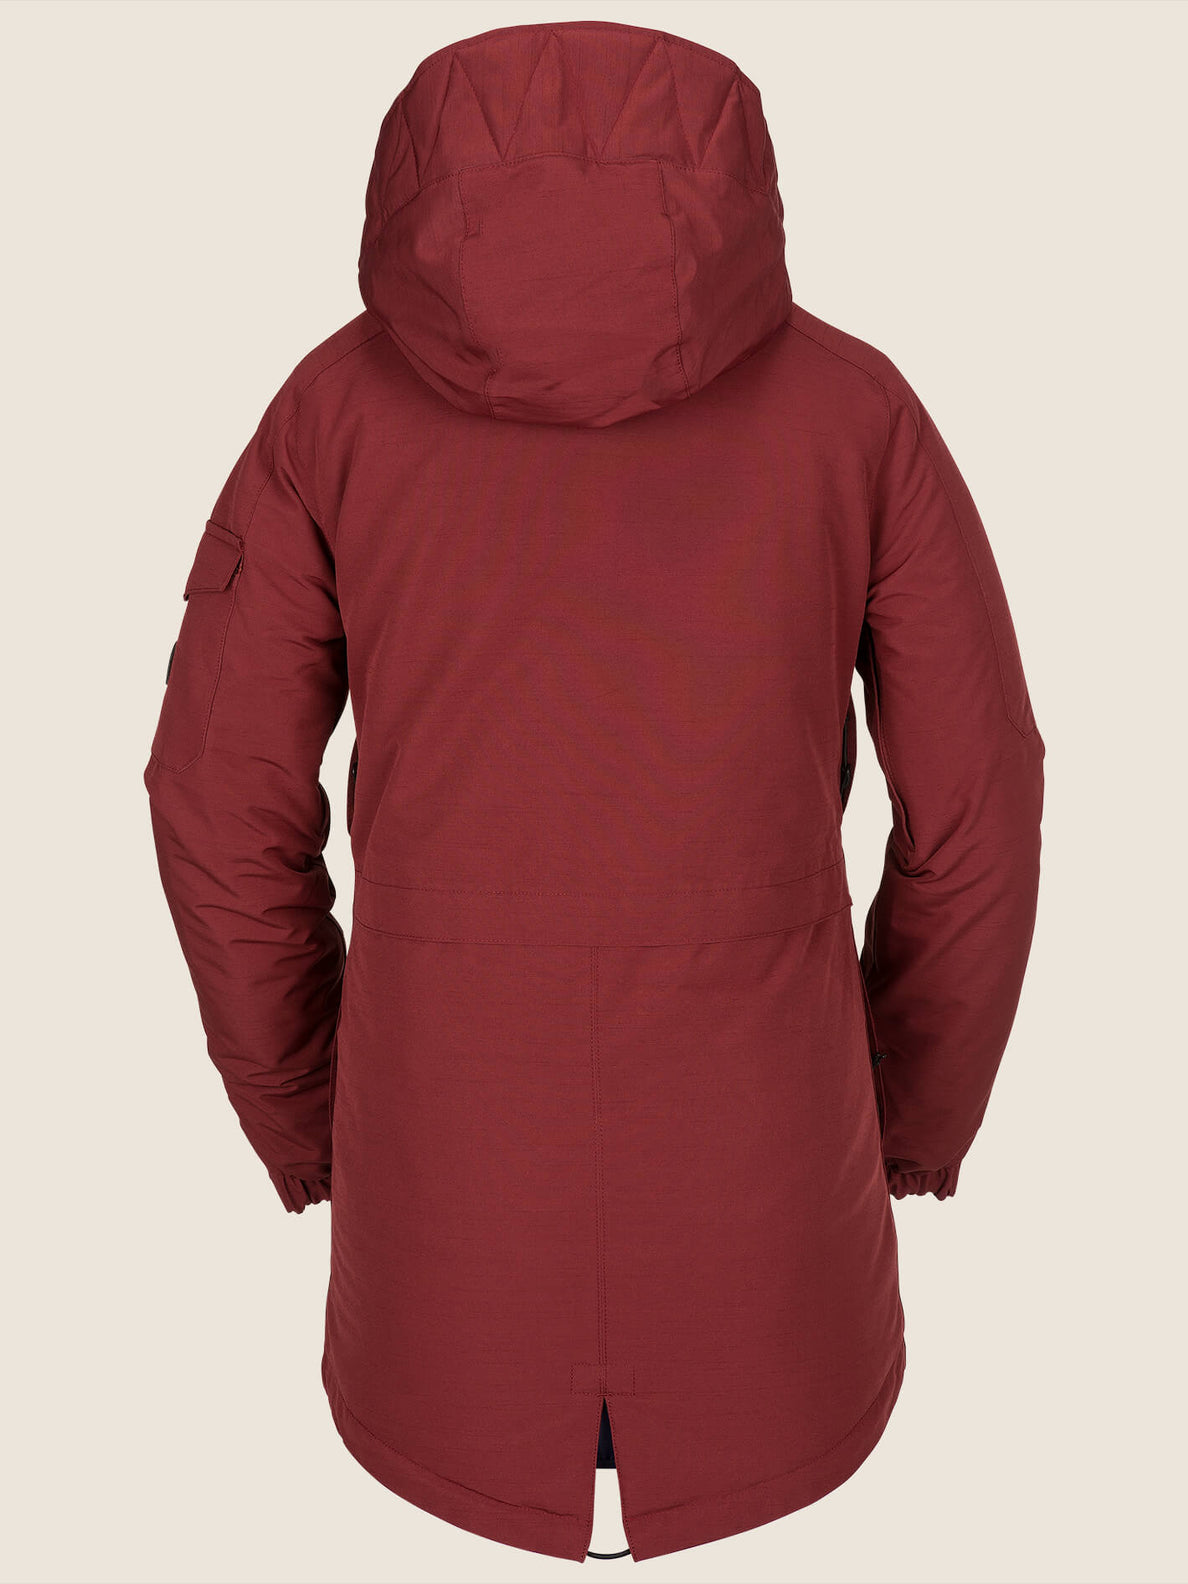 Shrine Insulated Jacket In Burnt Red, Back View